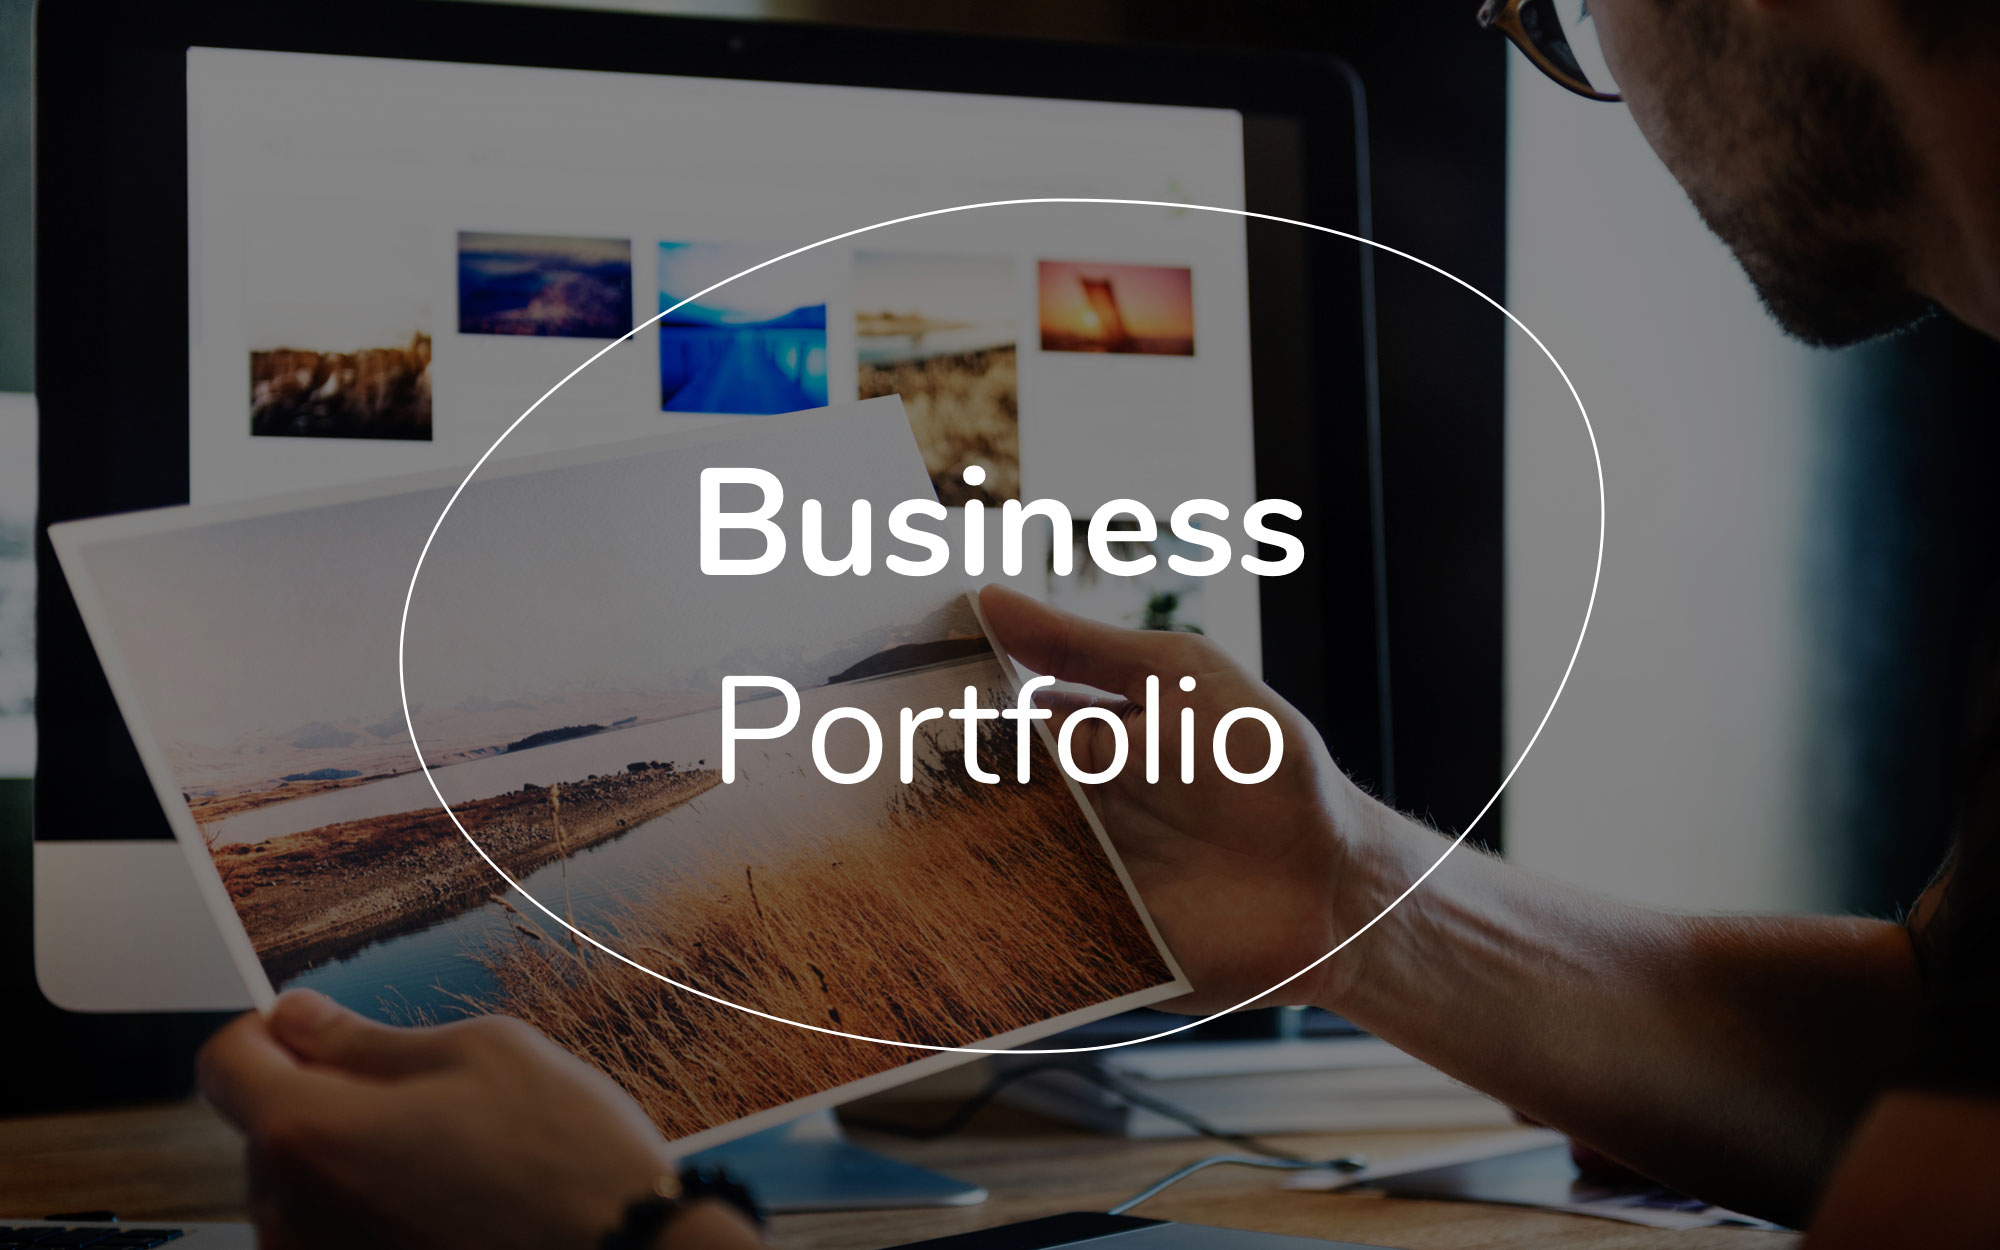 Business portfolio template free pdf ppt download slidebean business portfolio template free pdf ppt download flashek Choice Image